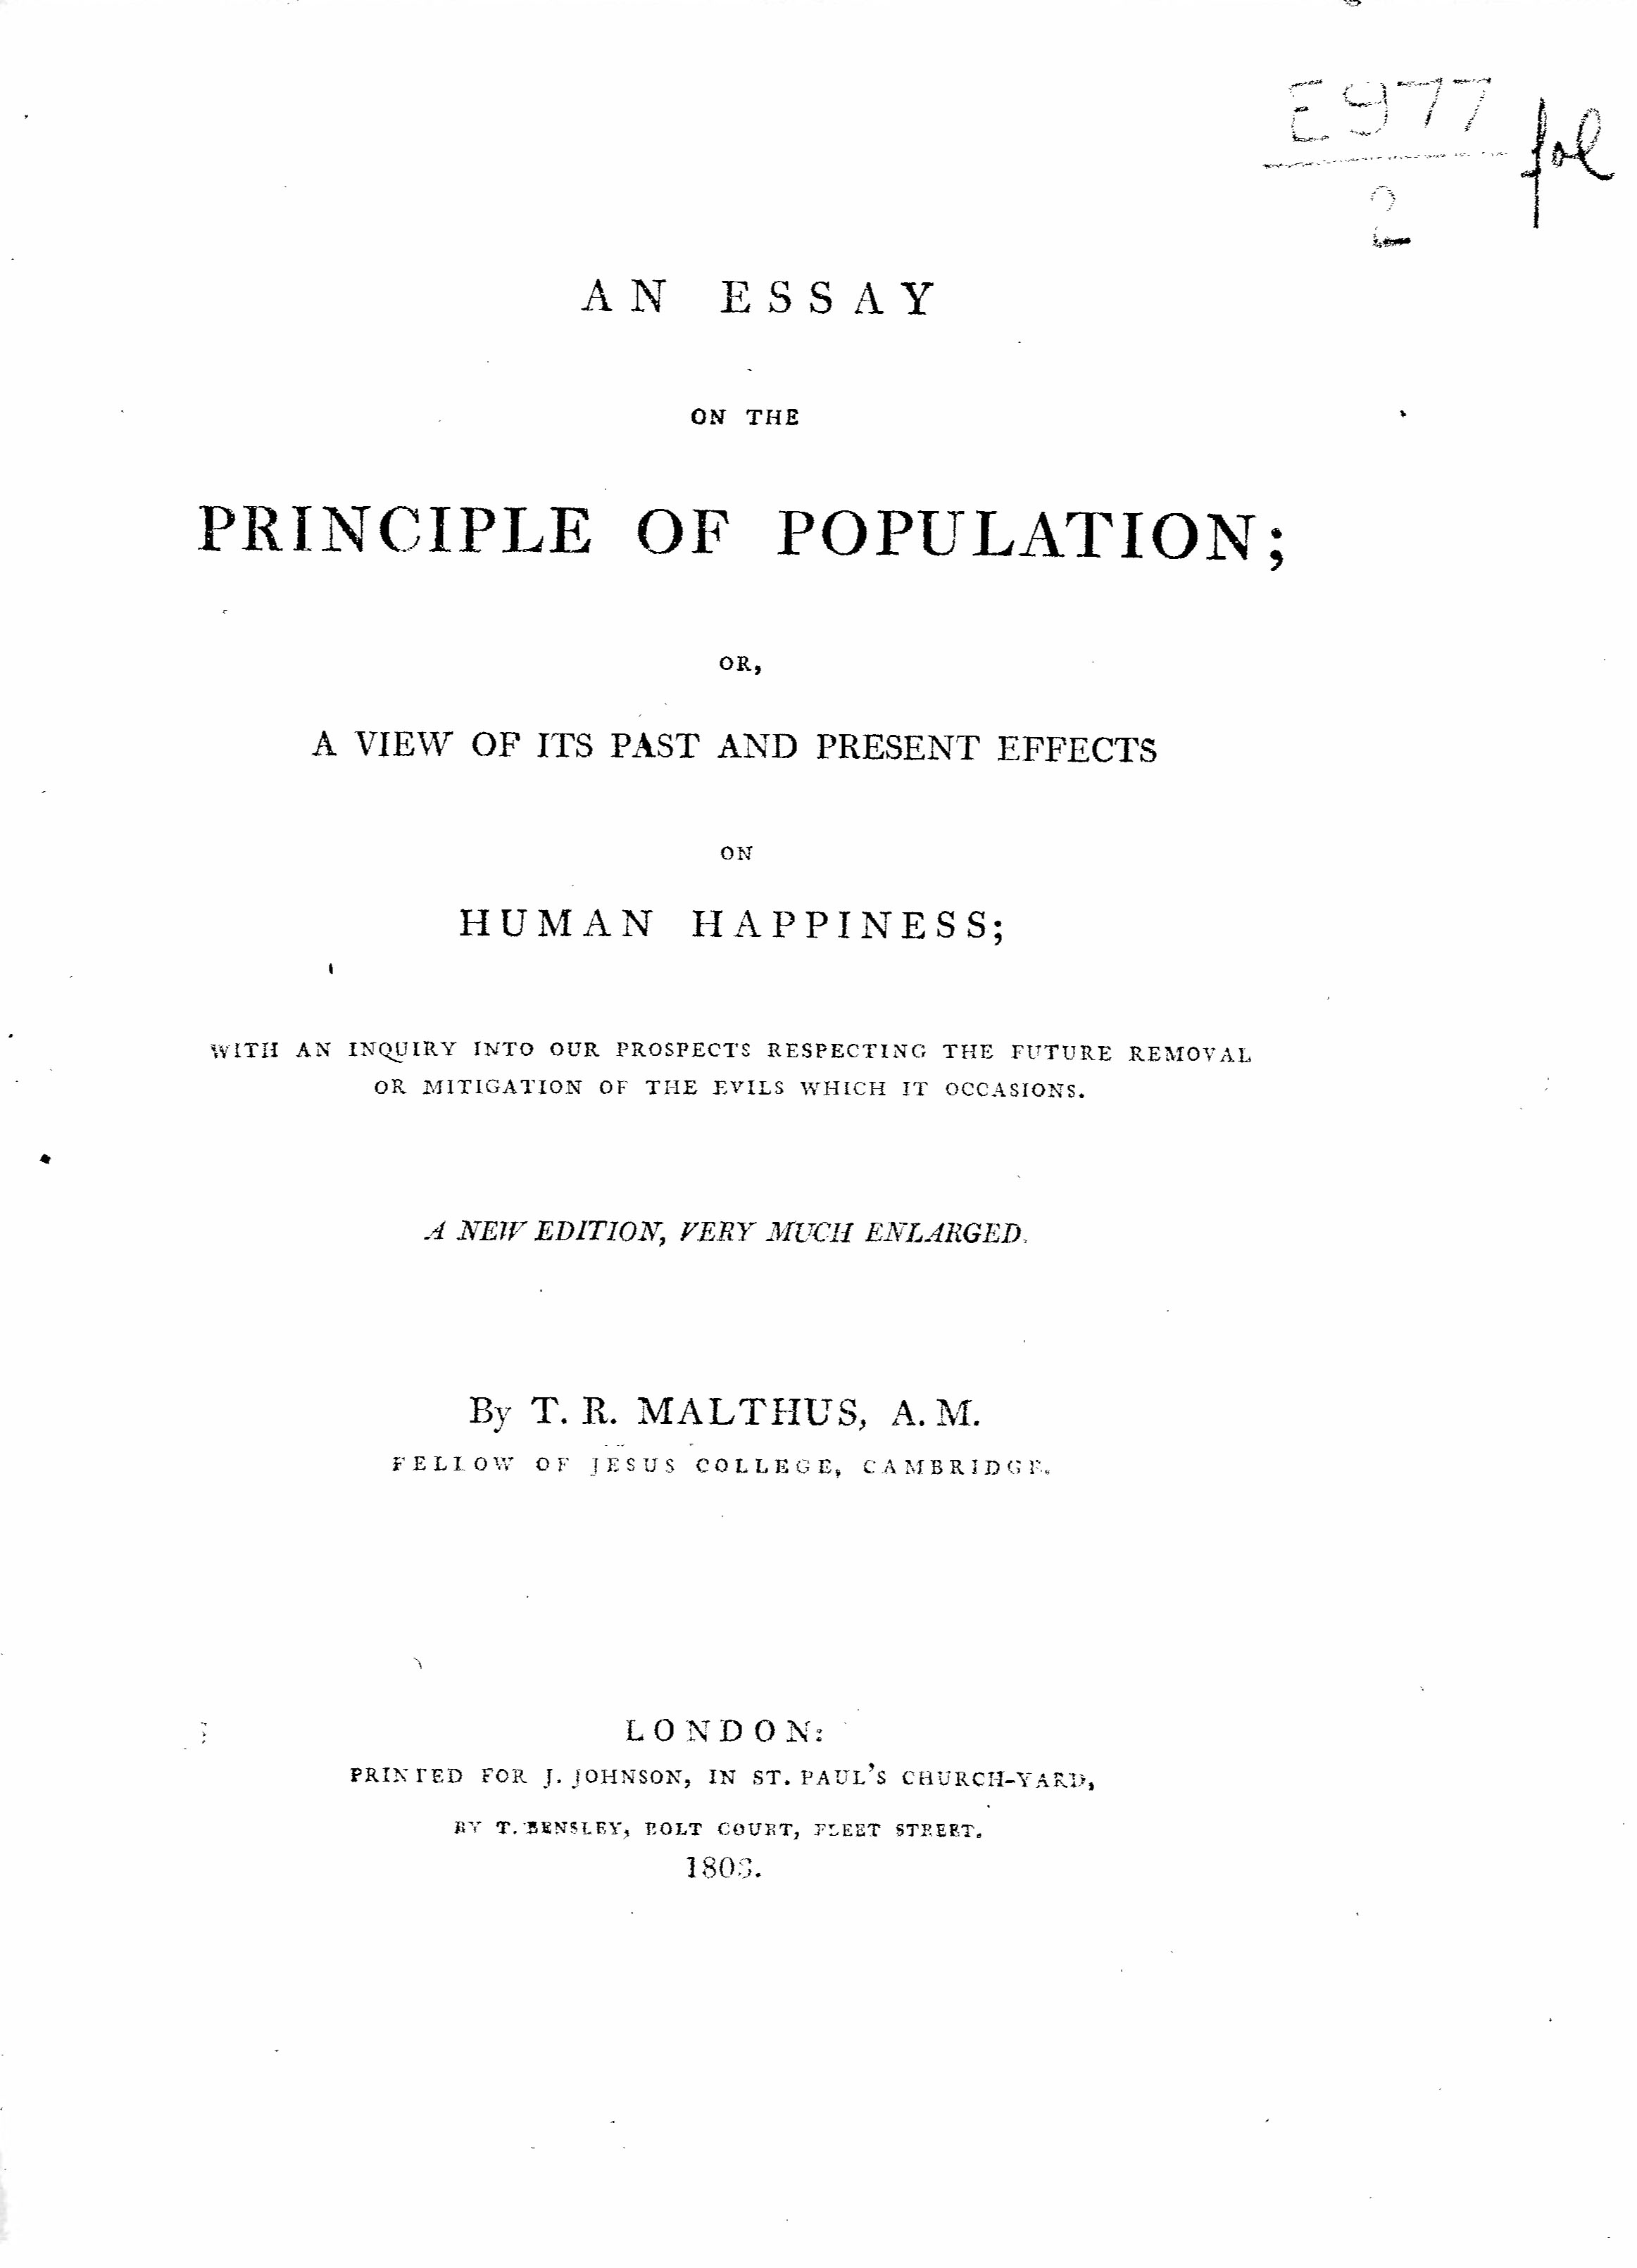 007 An Essay On The Principle Of Population Example Fascinating By Thomas Malthus Pdf In Concluded Which Following Full